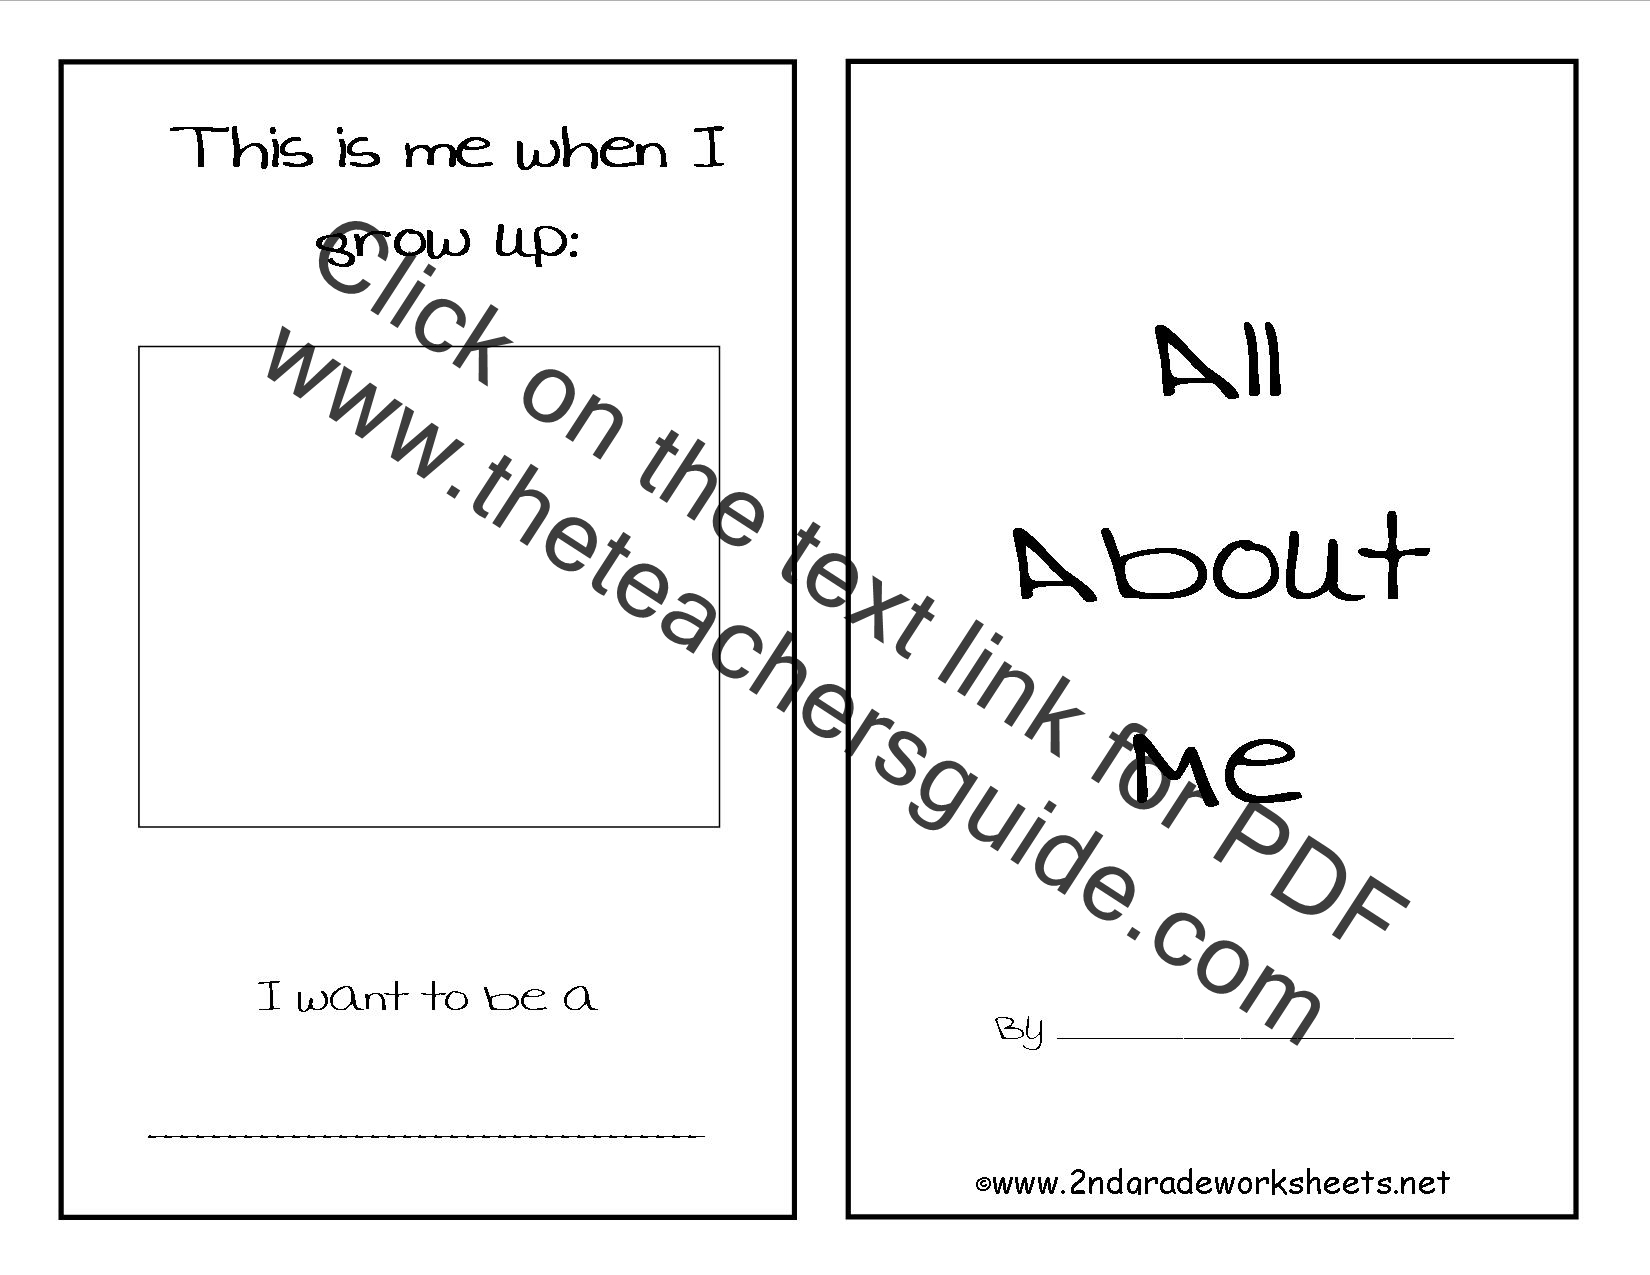 worksheet Free Printable School Worksheets free back to school worksheets and printouts all about me worksheet school